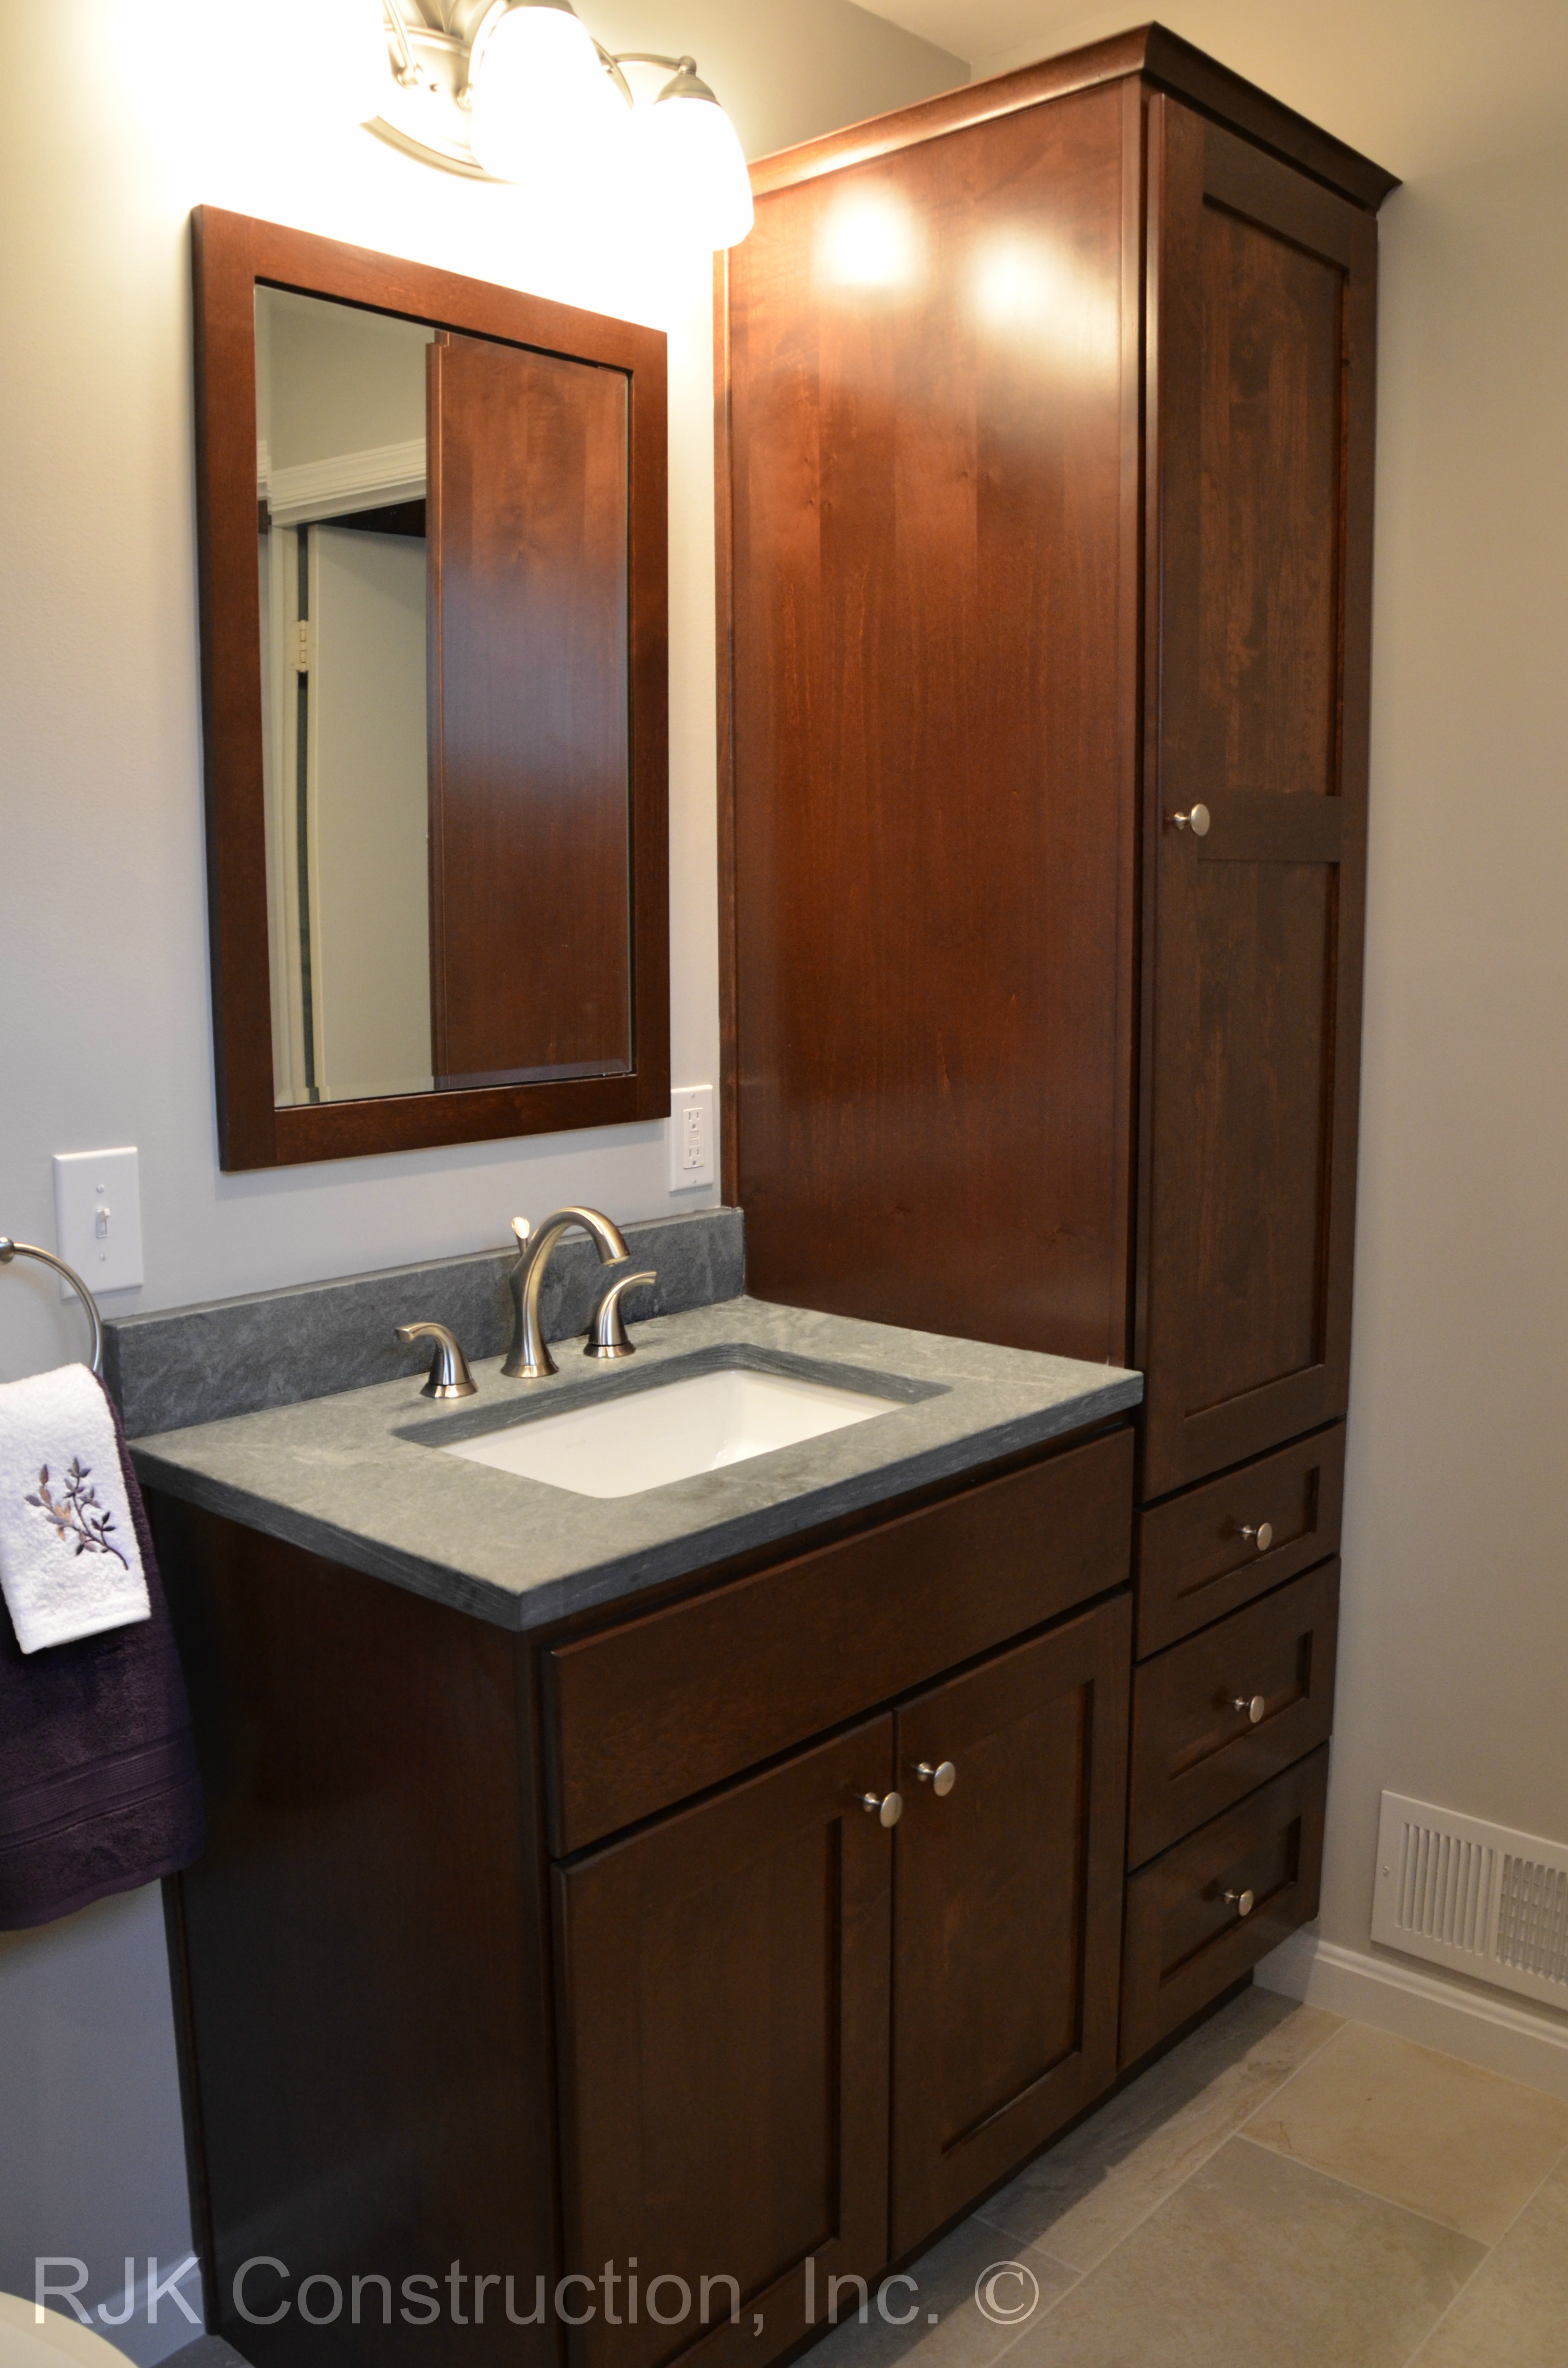 Bathroom Vanity With Tall Side Cabinet36 inch bathroom vanity with tall side cabinet google search